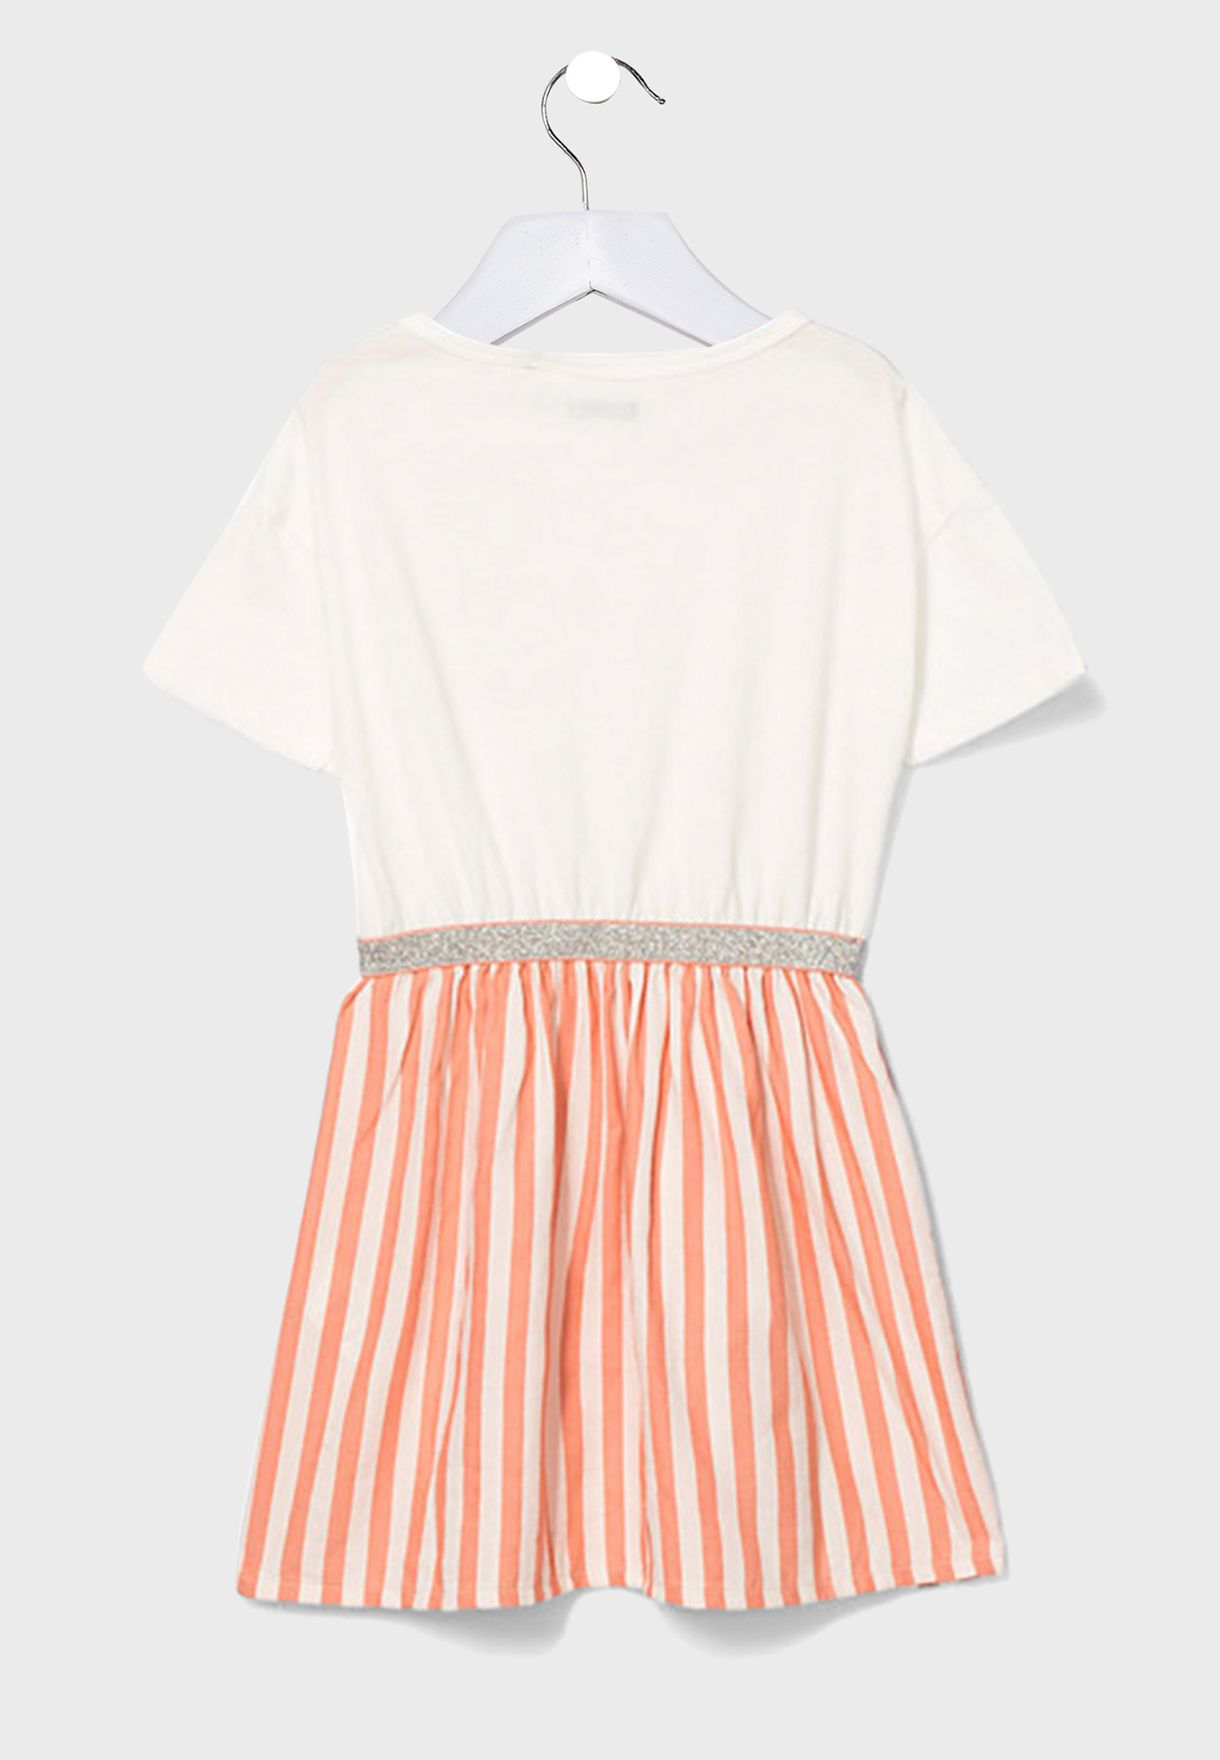 Youth Striped Dress